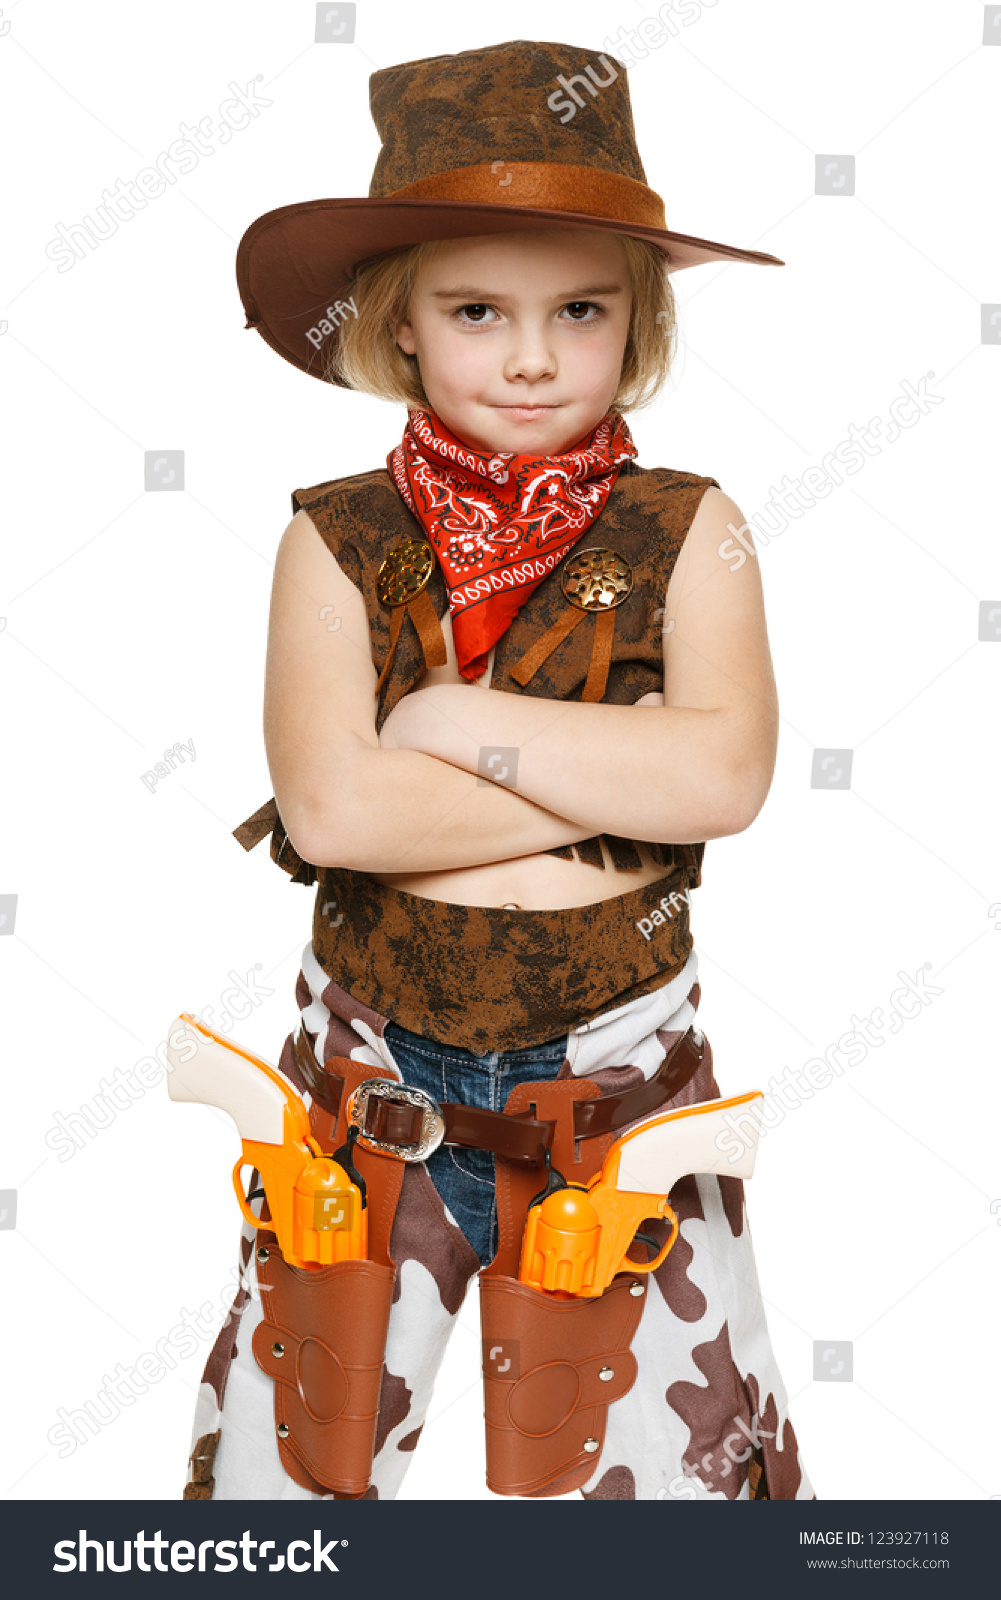 904710e0e7210 Little Girl Wearing Cowboy Costume Standing Stock Photo (Edit Now ...